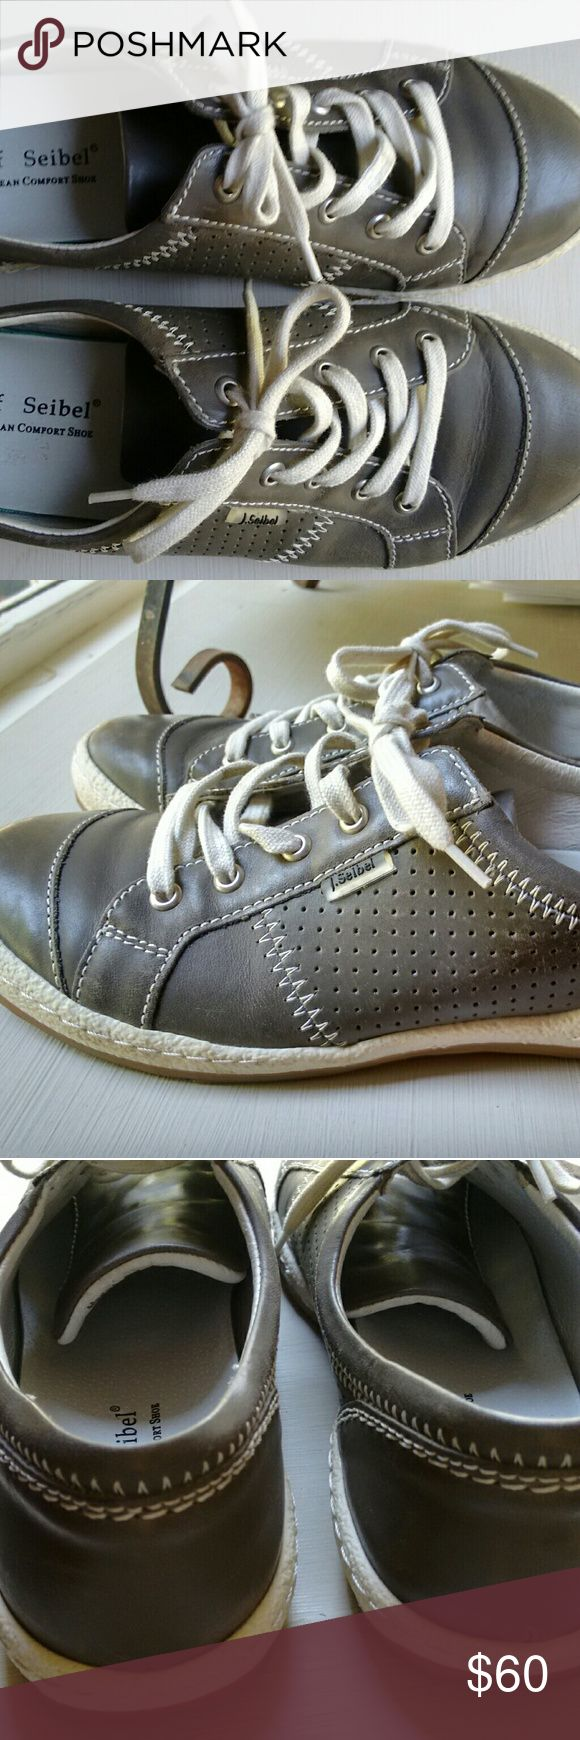 Josef Seibel Caspian leather sneakers EUC size 39 This is a pair of Josef Seibel Caspian women's fashion sneakers in gray leather. They are in excellent used condition. They are a size 39 European. They fit like a size 8 us to me. Minimal wear. Very clean. Josef Seibel Shoes Sneakers